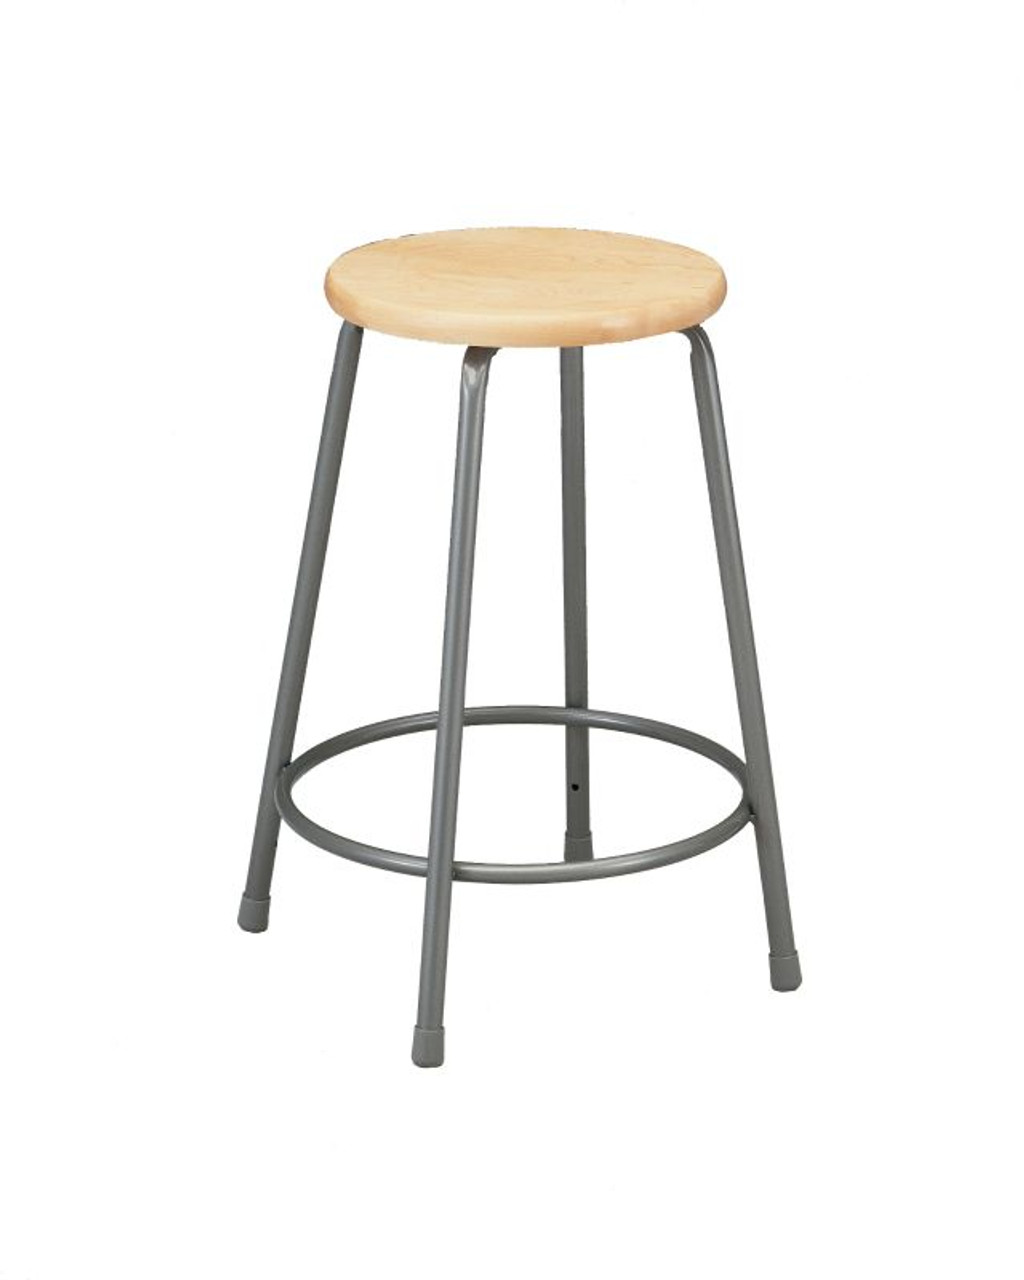 Tremendous Ki 630W Industrial Stool With Wood Seat Fixed Height 30 Inches Onthecornerstone Fun Painted Chair Ideas Images Onthecornerstoneorg